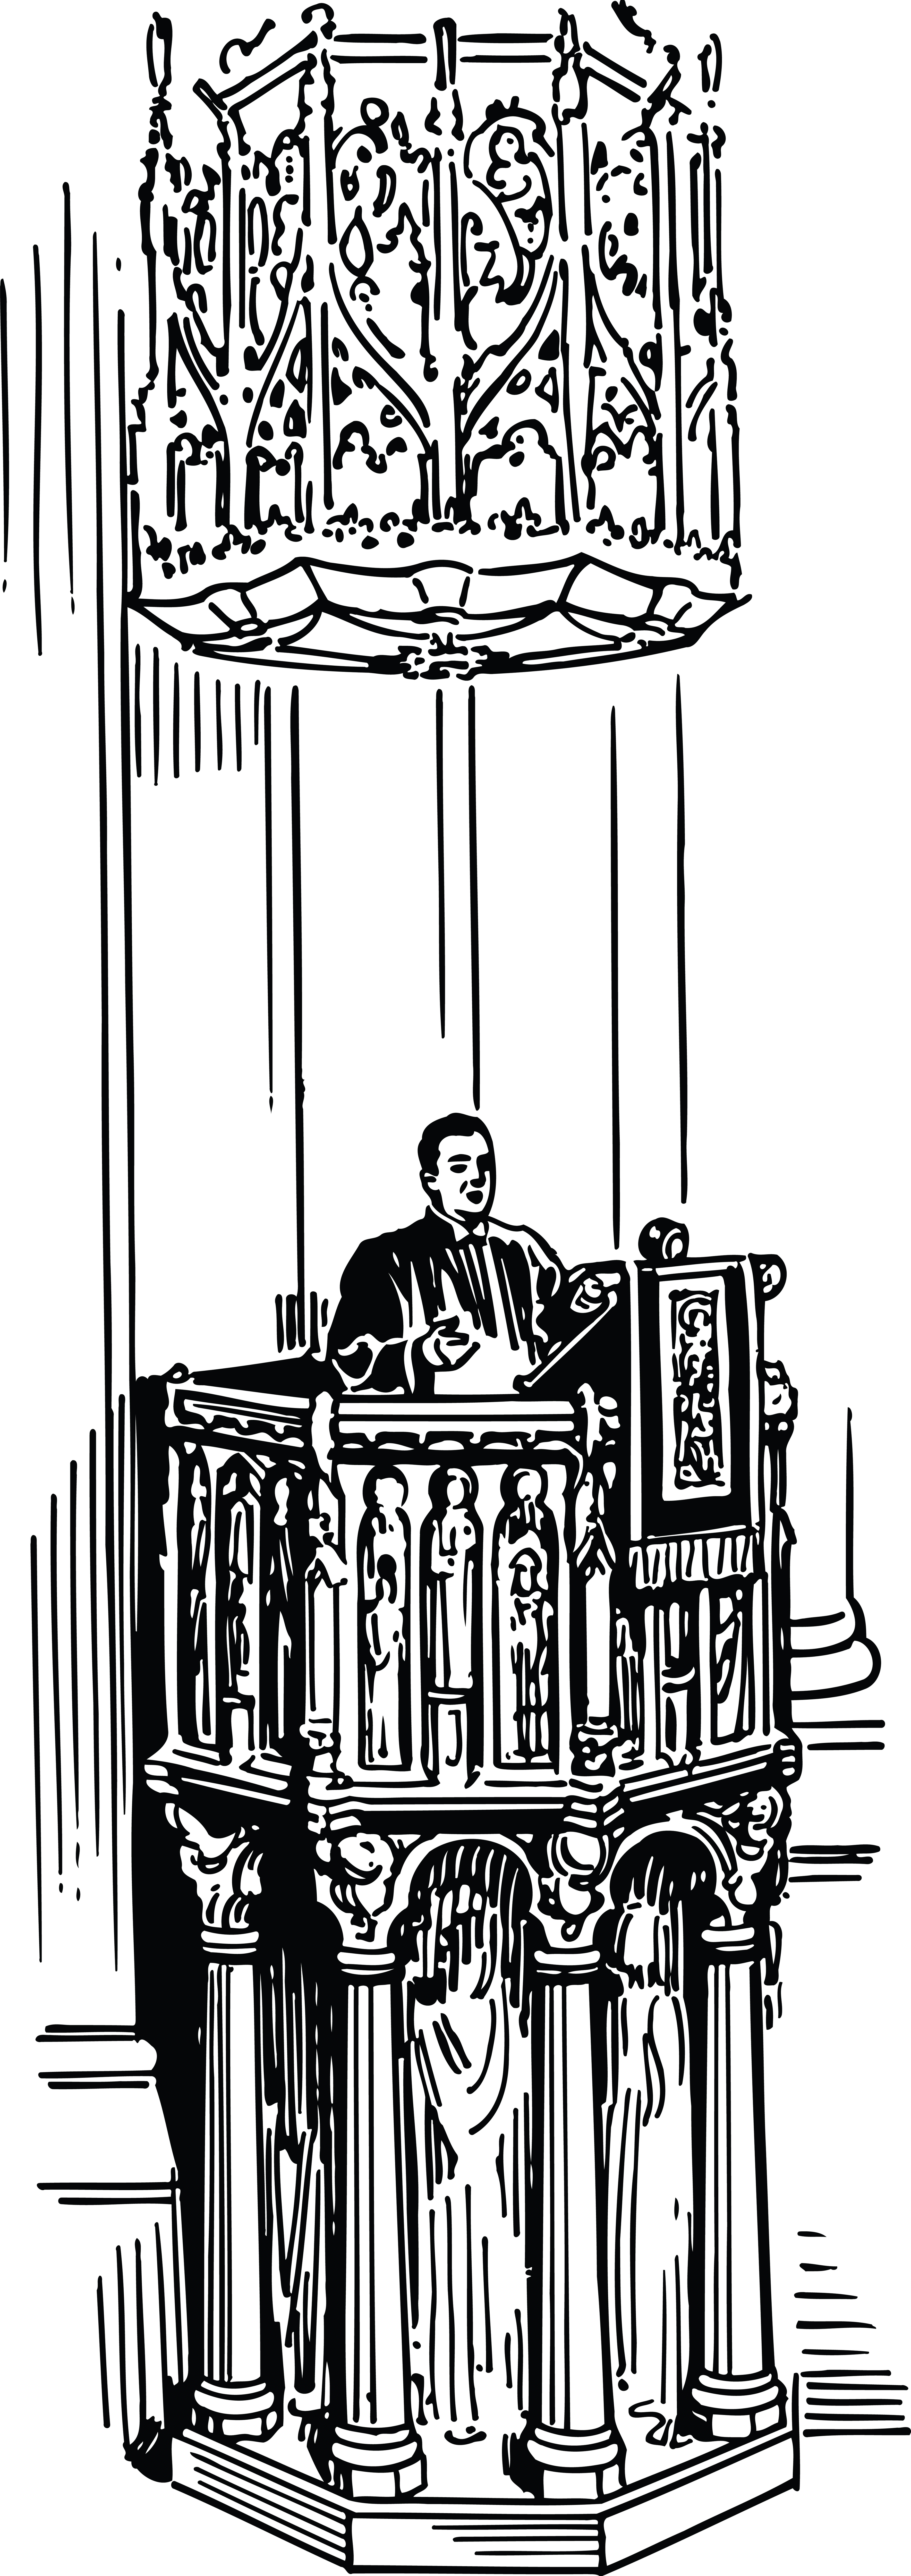 Pulpit clipart #2, Download drawings